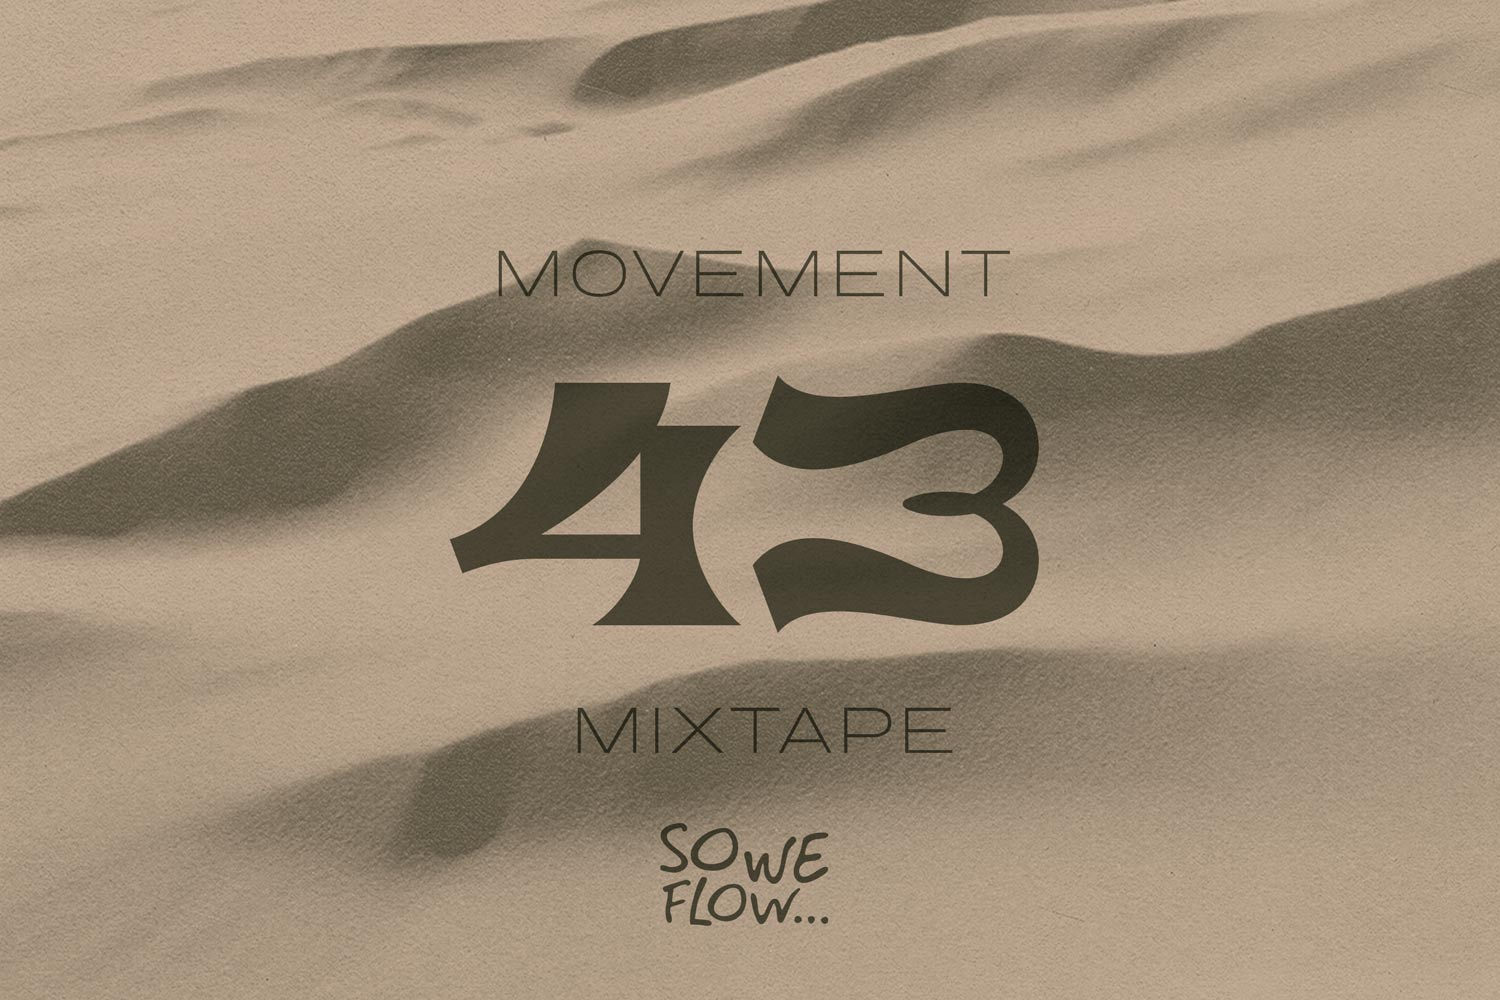 So We Flow... Movement Mixtape No.43 Artwork